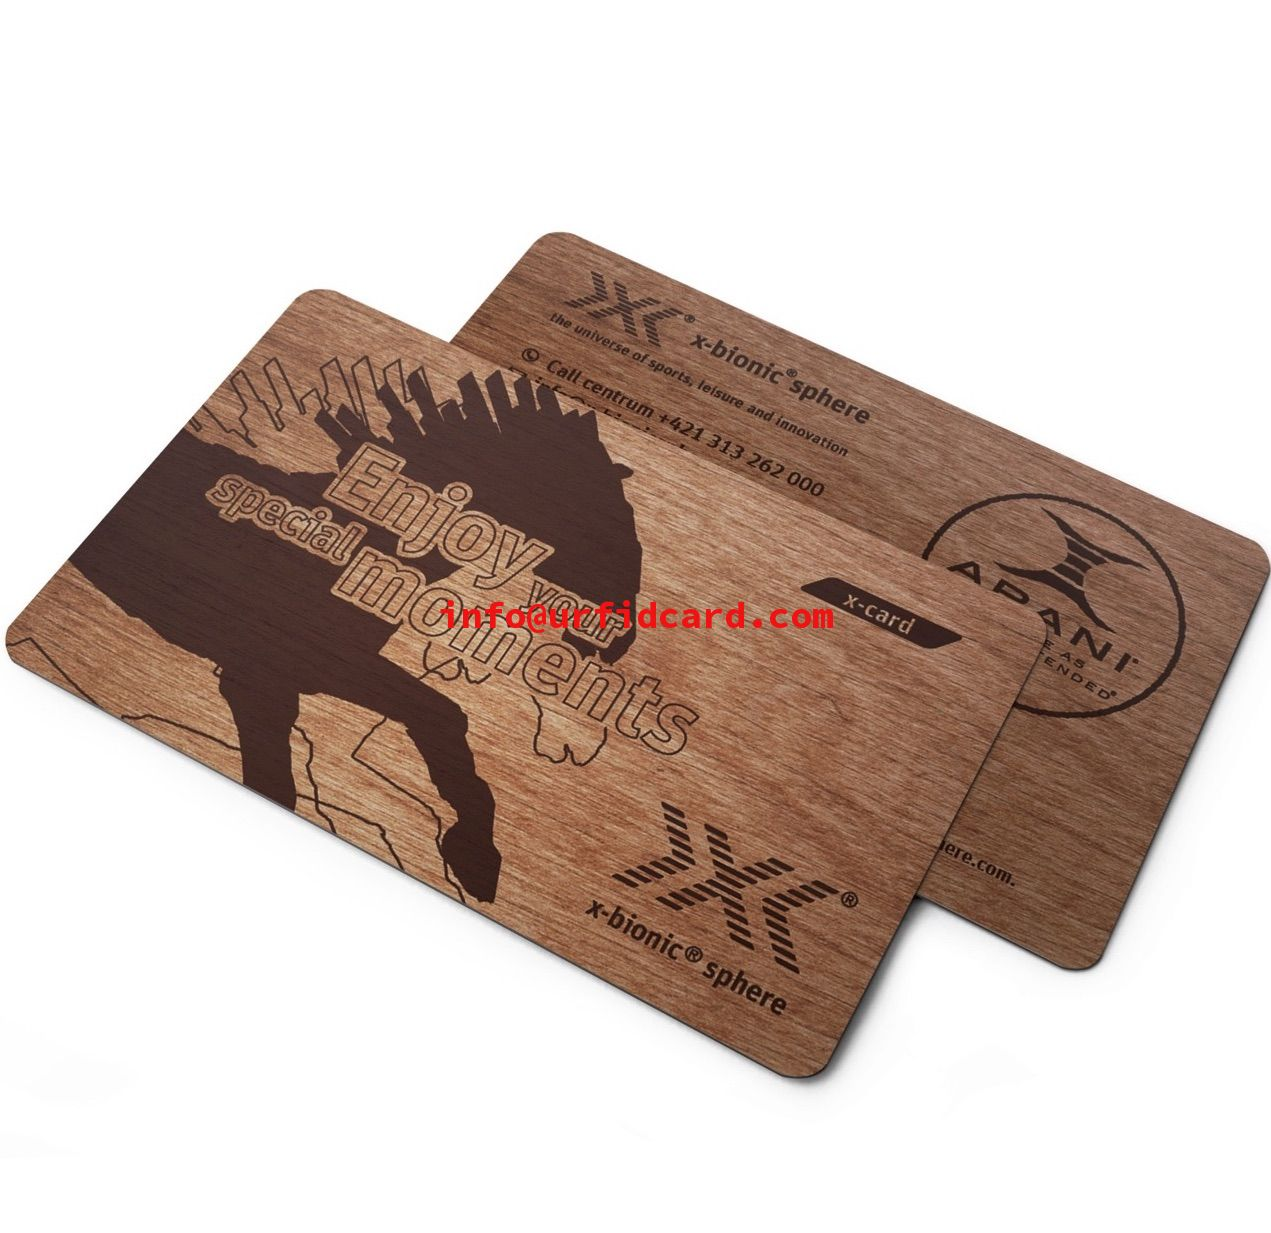 RFID Wooden Keycards With 1k Mifare chip